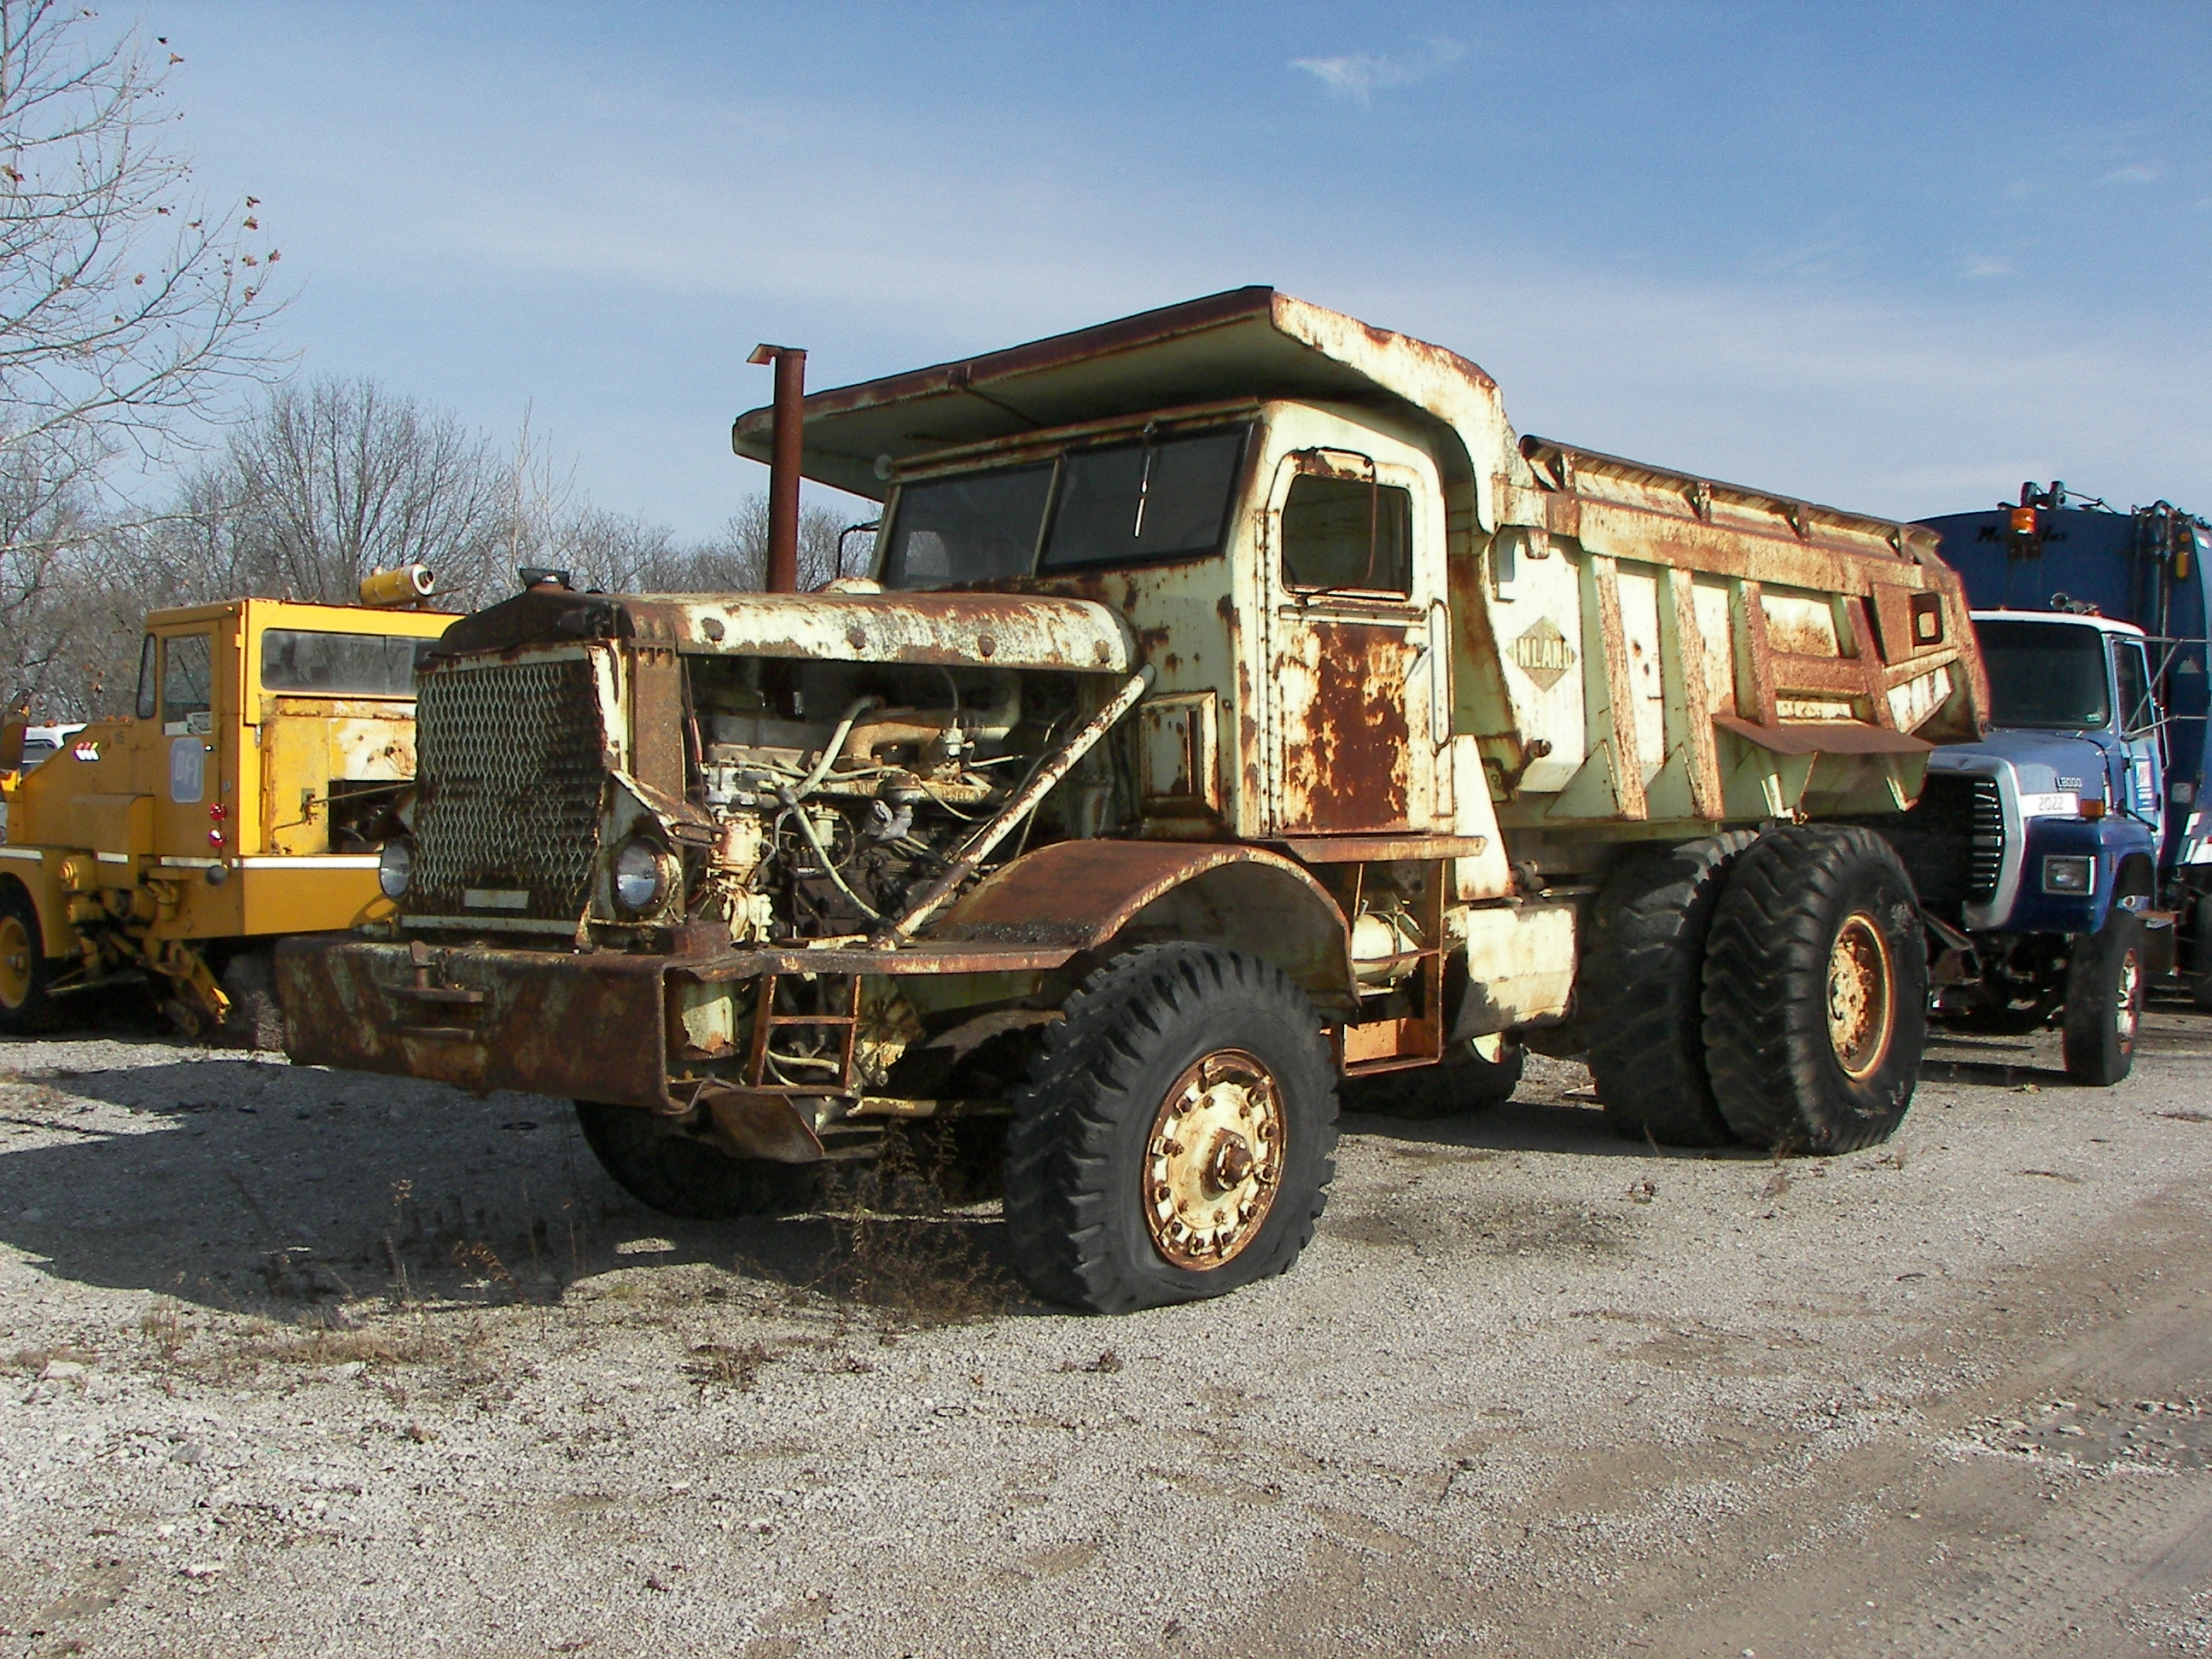 File:Euclid offroad dump truck old.jpg - Wikimedia Commons